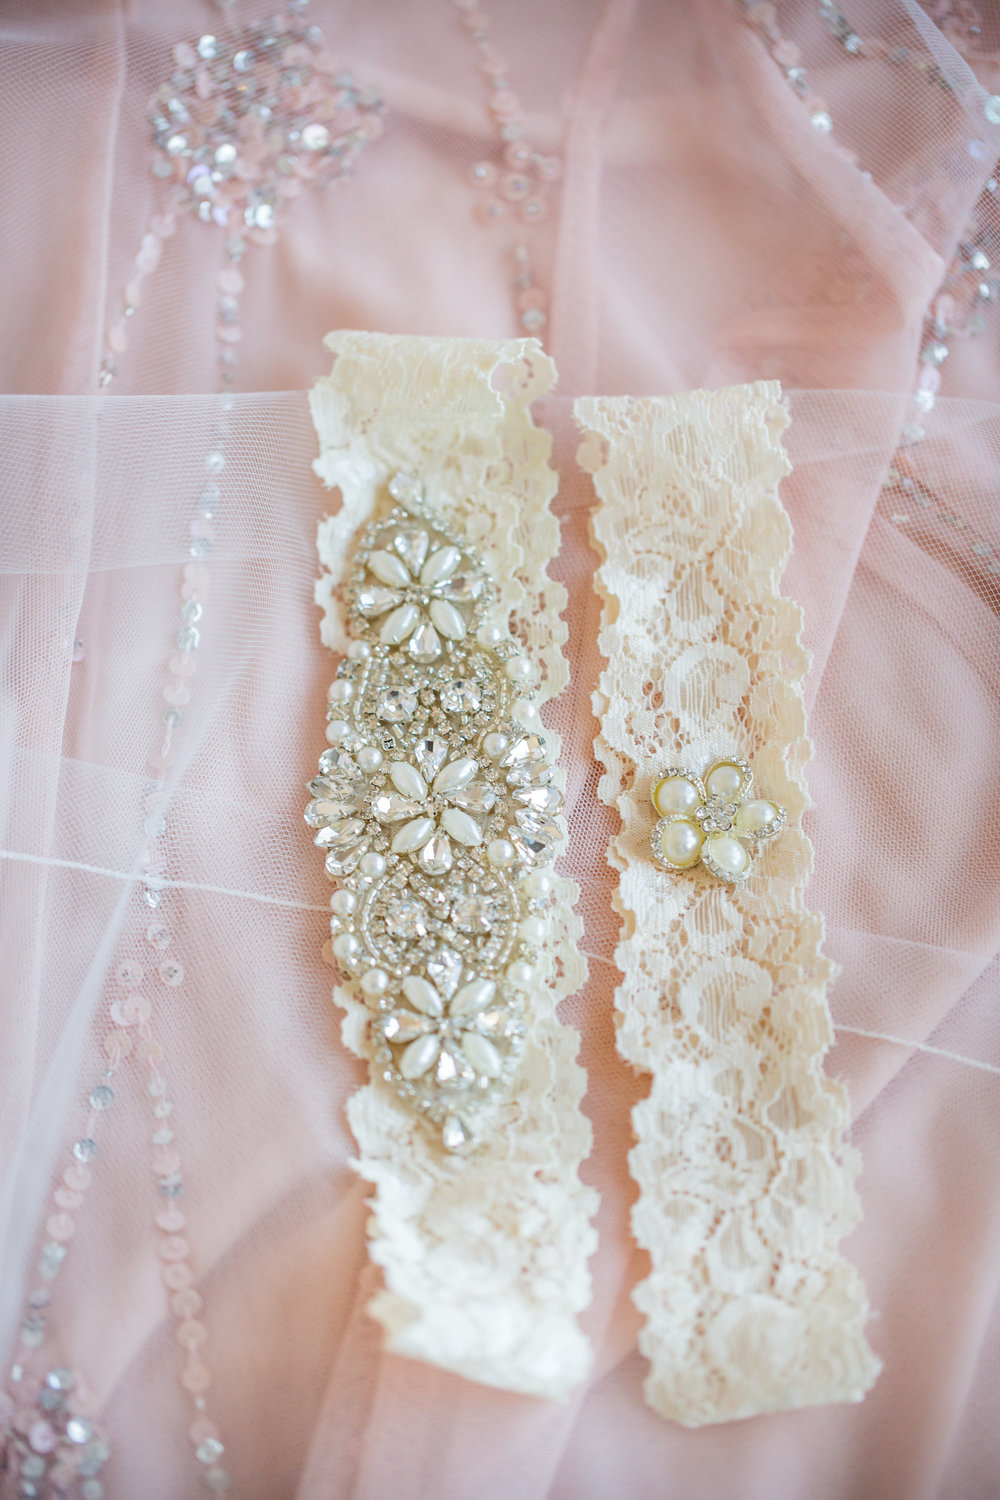 white lace and beaded garter - - A Diamond Hotel Penthouse Wedding by Katelyn Owens Photography